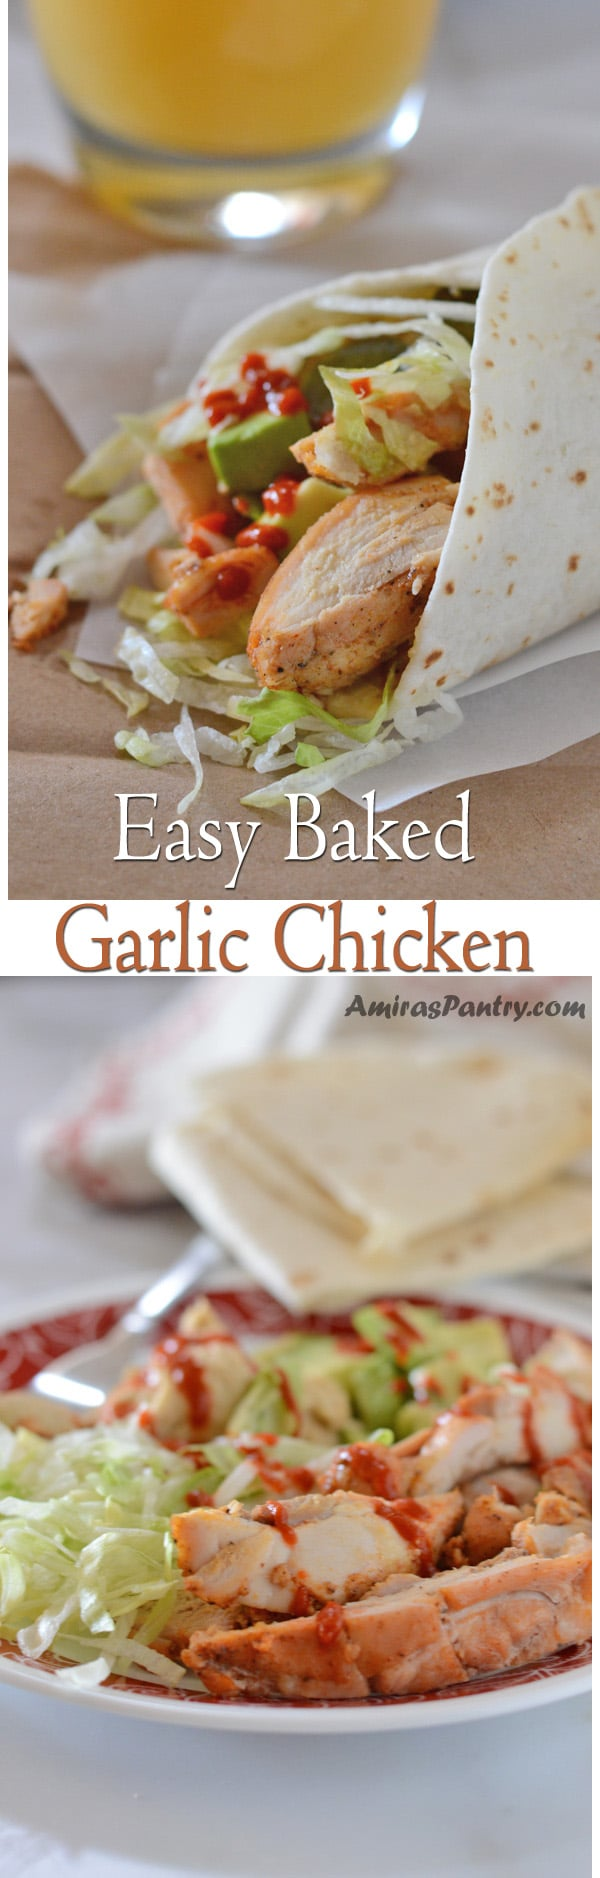 Easy baked garlic chicken is a quick easy chicken dinner for those busy nights. This is my go to chicken recipe. So easy to make and it always turns out perfect! I usually double the recipe and freeze.